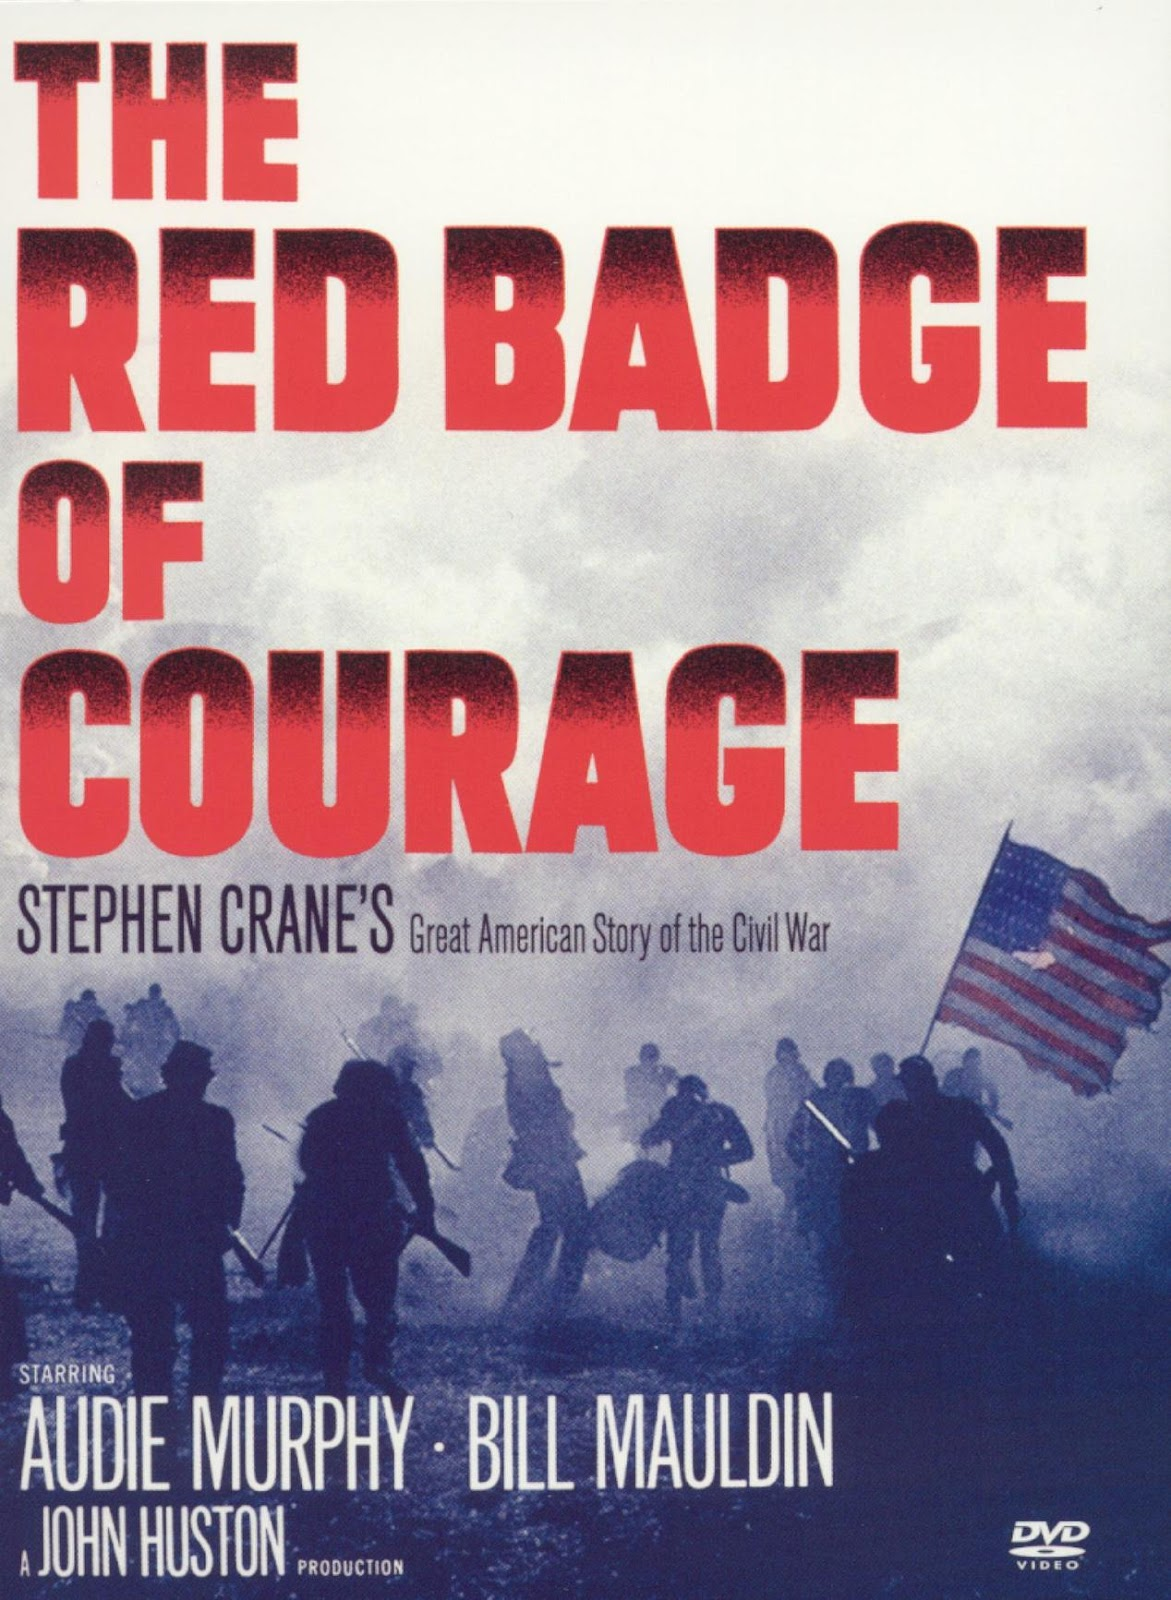 civil war film festival 5th 6th 2015 a commemoration of the red badge of courage 1951 directed by john huston